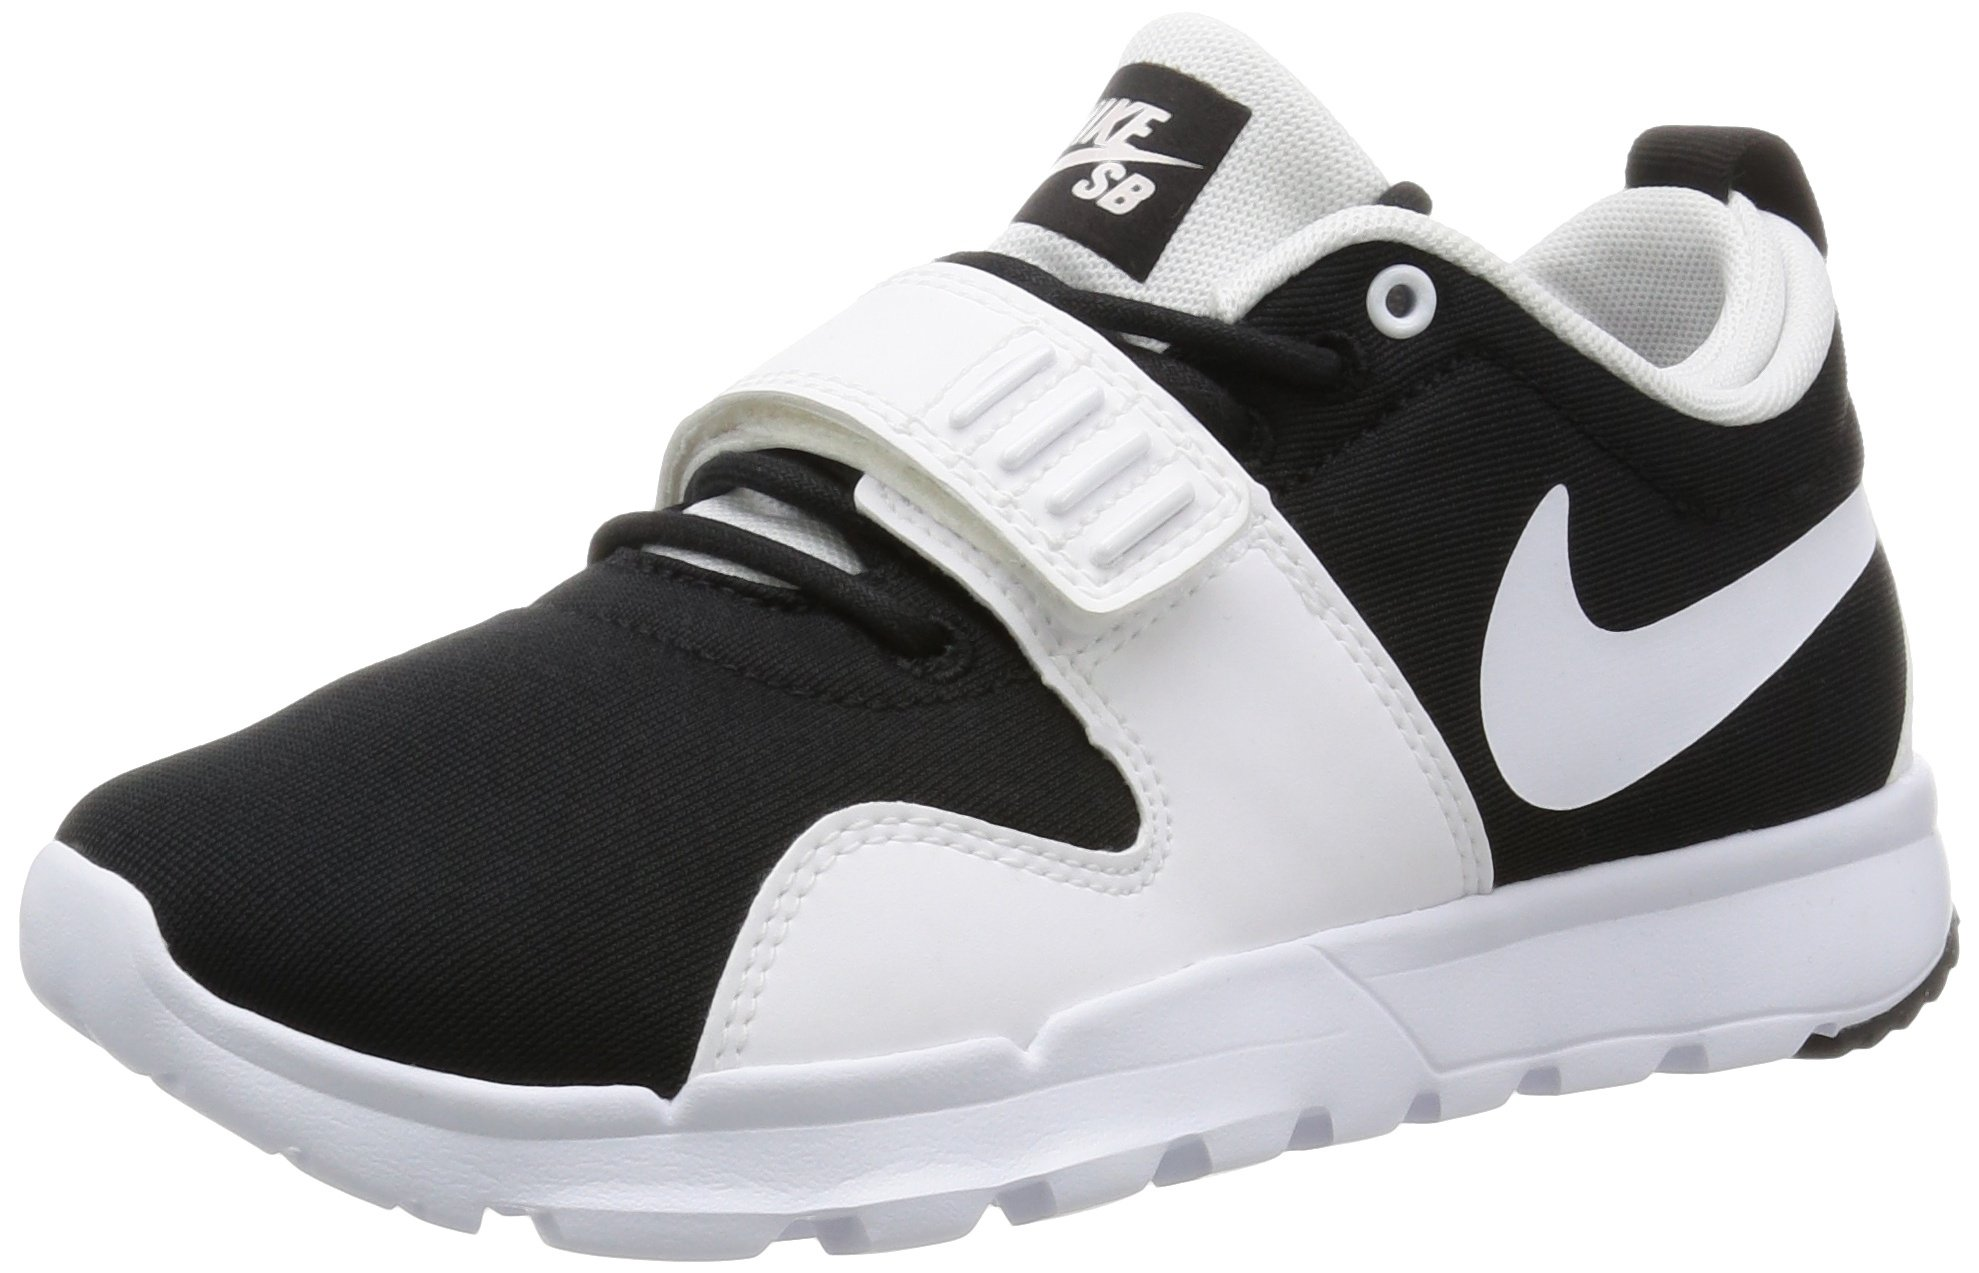 NIKE Trainerendor Mens Skateboarding-Shoes 616575-011_9.5 - Black/White